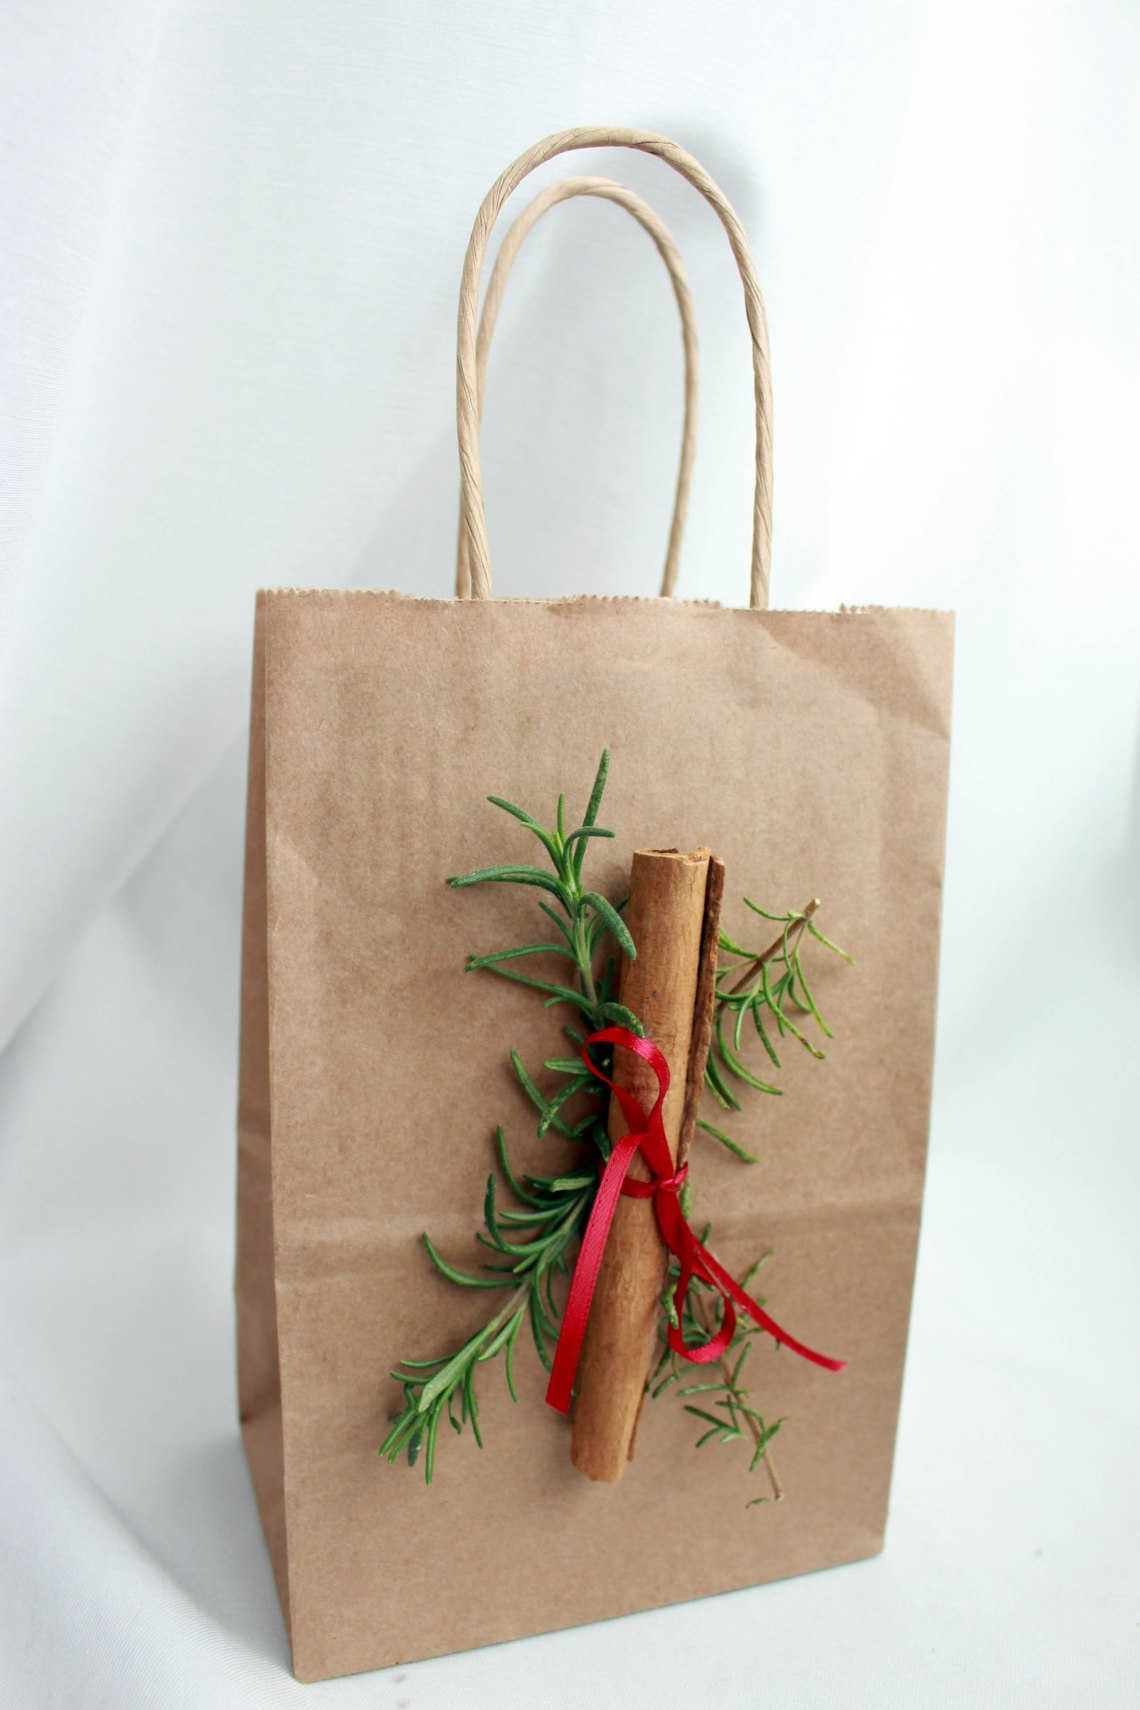 Yule Gift Wrapping Ideas (That Don't Look Christmas-y